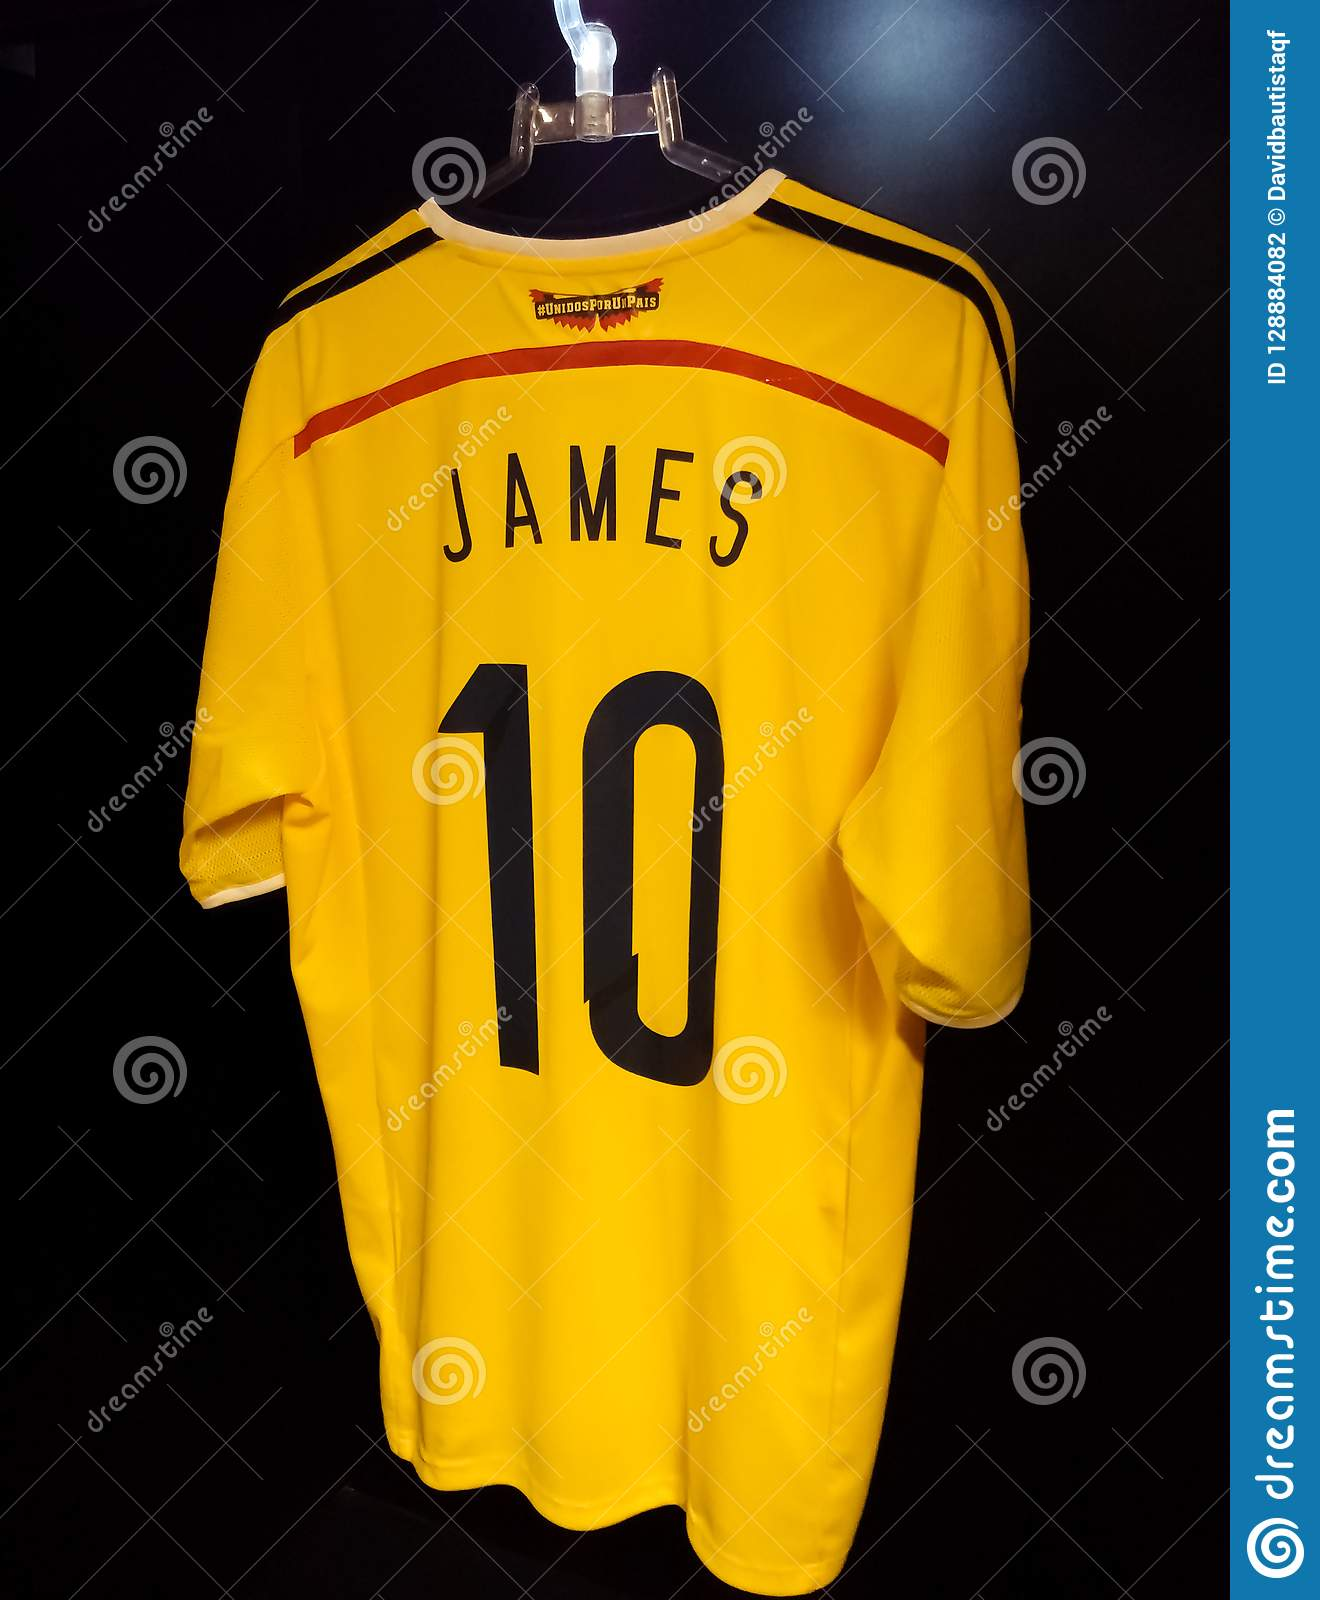 new style ad826 e31e2 Shirt Of The Colombian Soccer National Team. 10, James ...